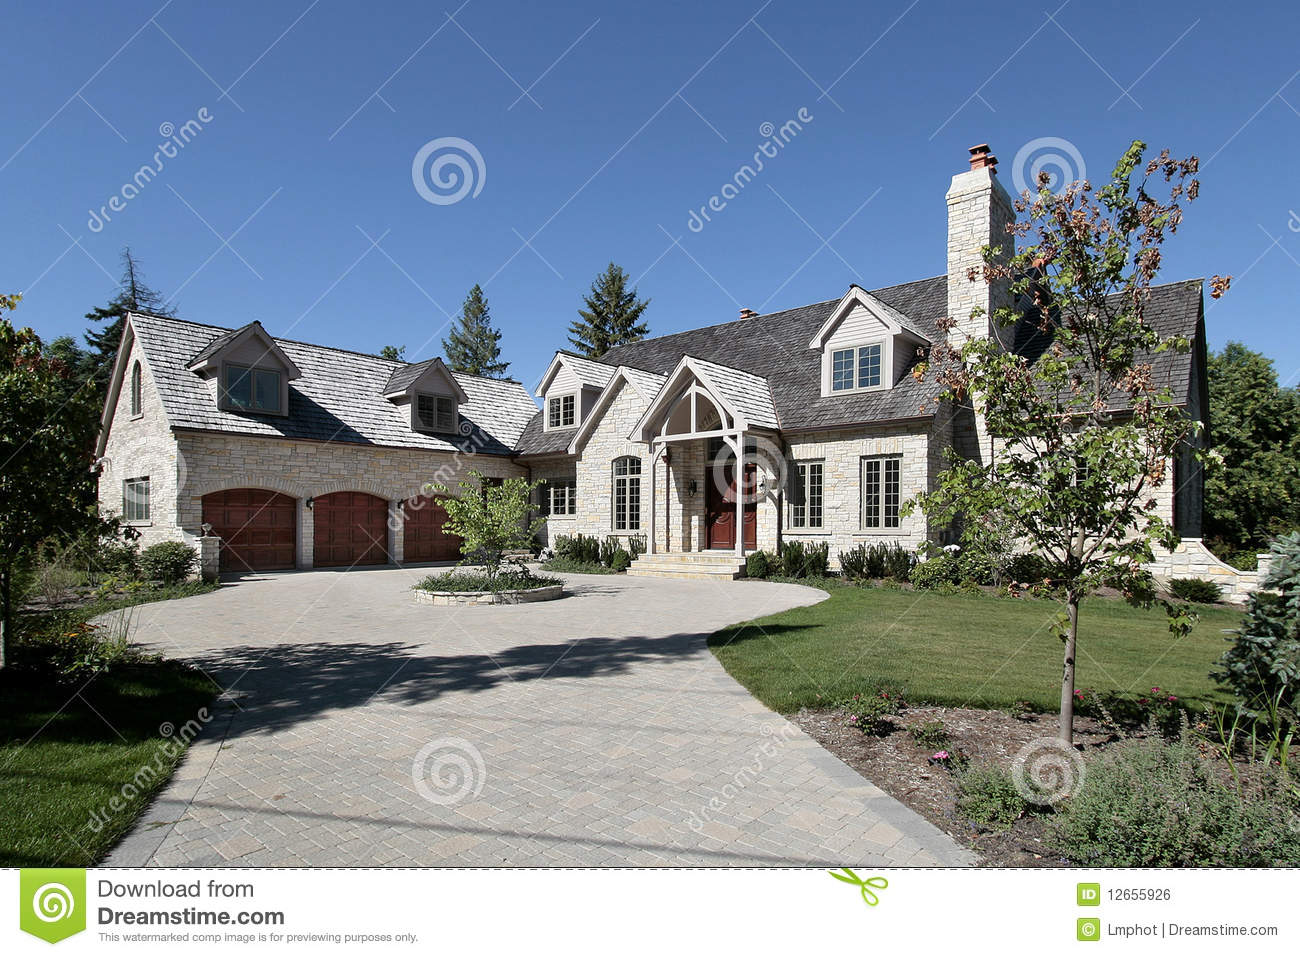 Luxury Stone Home In Suburbs Royalty Free Stock Image